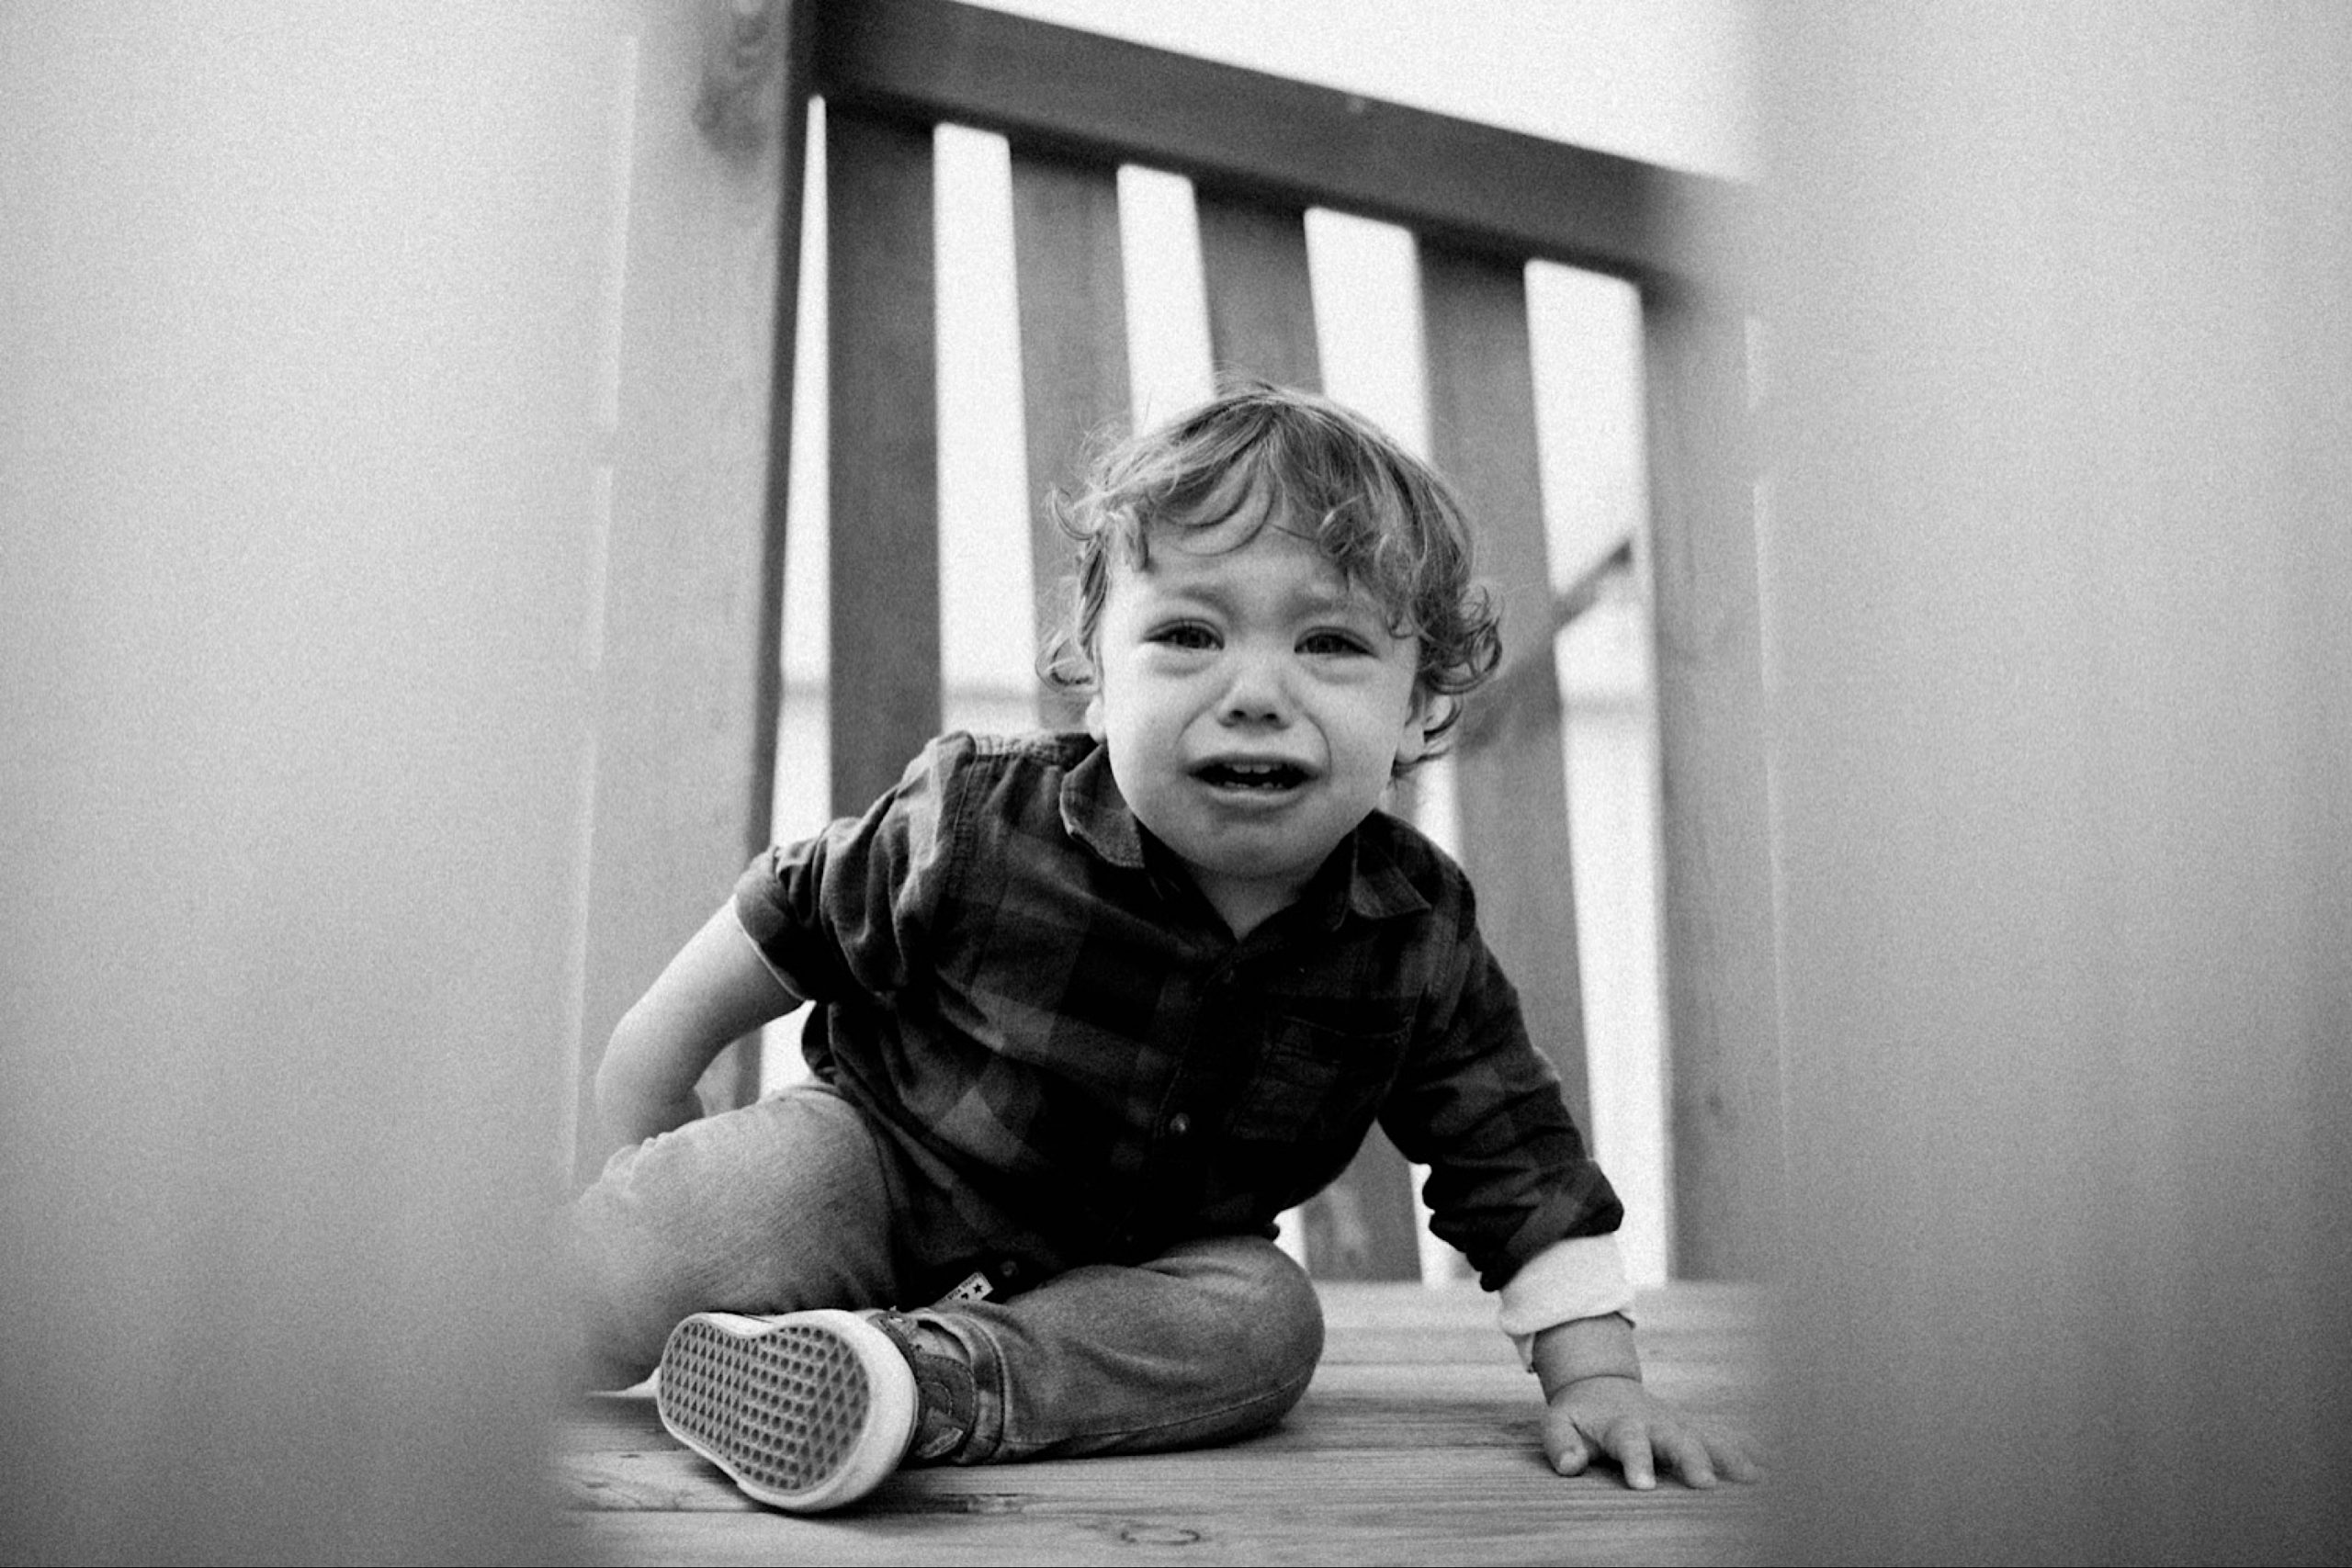 A black & white photo taken through the wall of a playground platform, he's looking at the platform and crying because he wants to go on the swing.